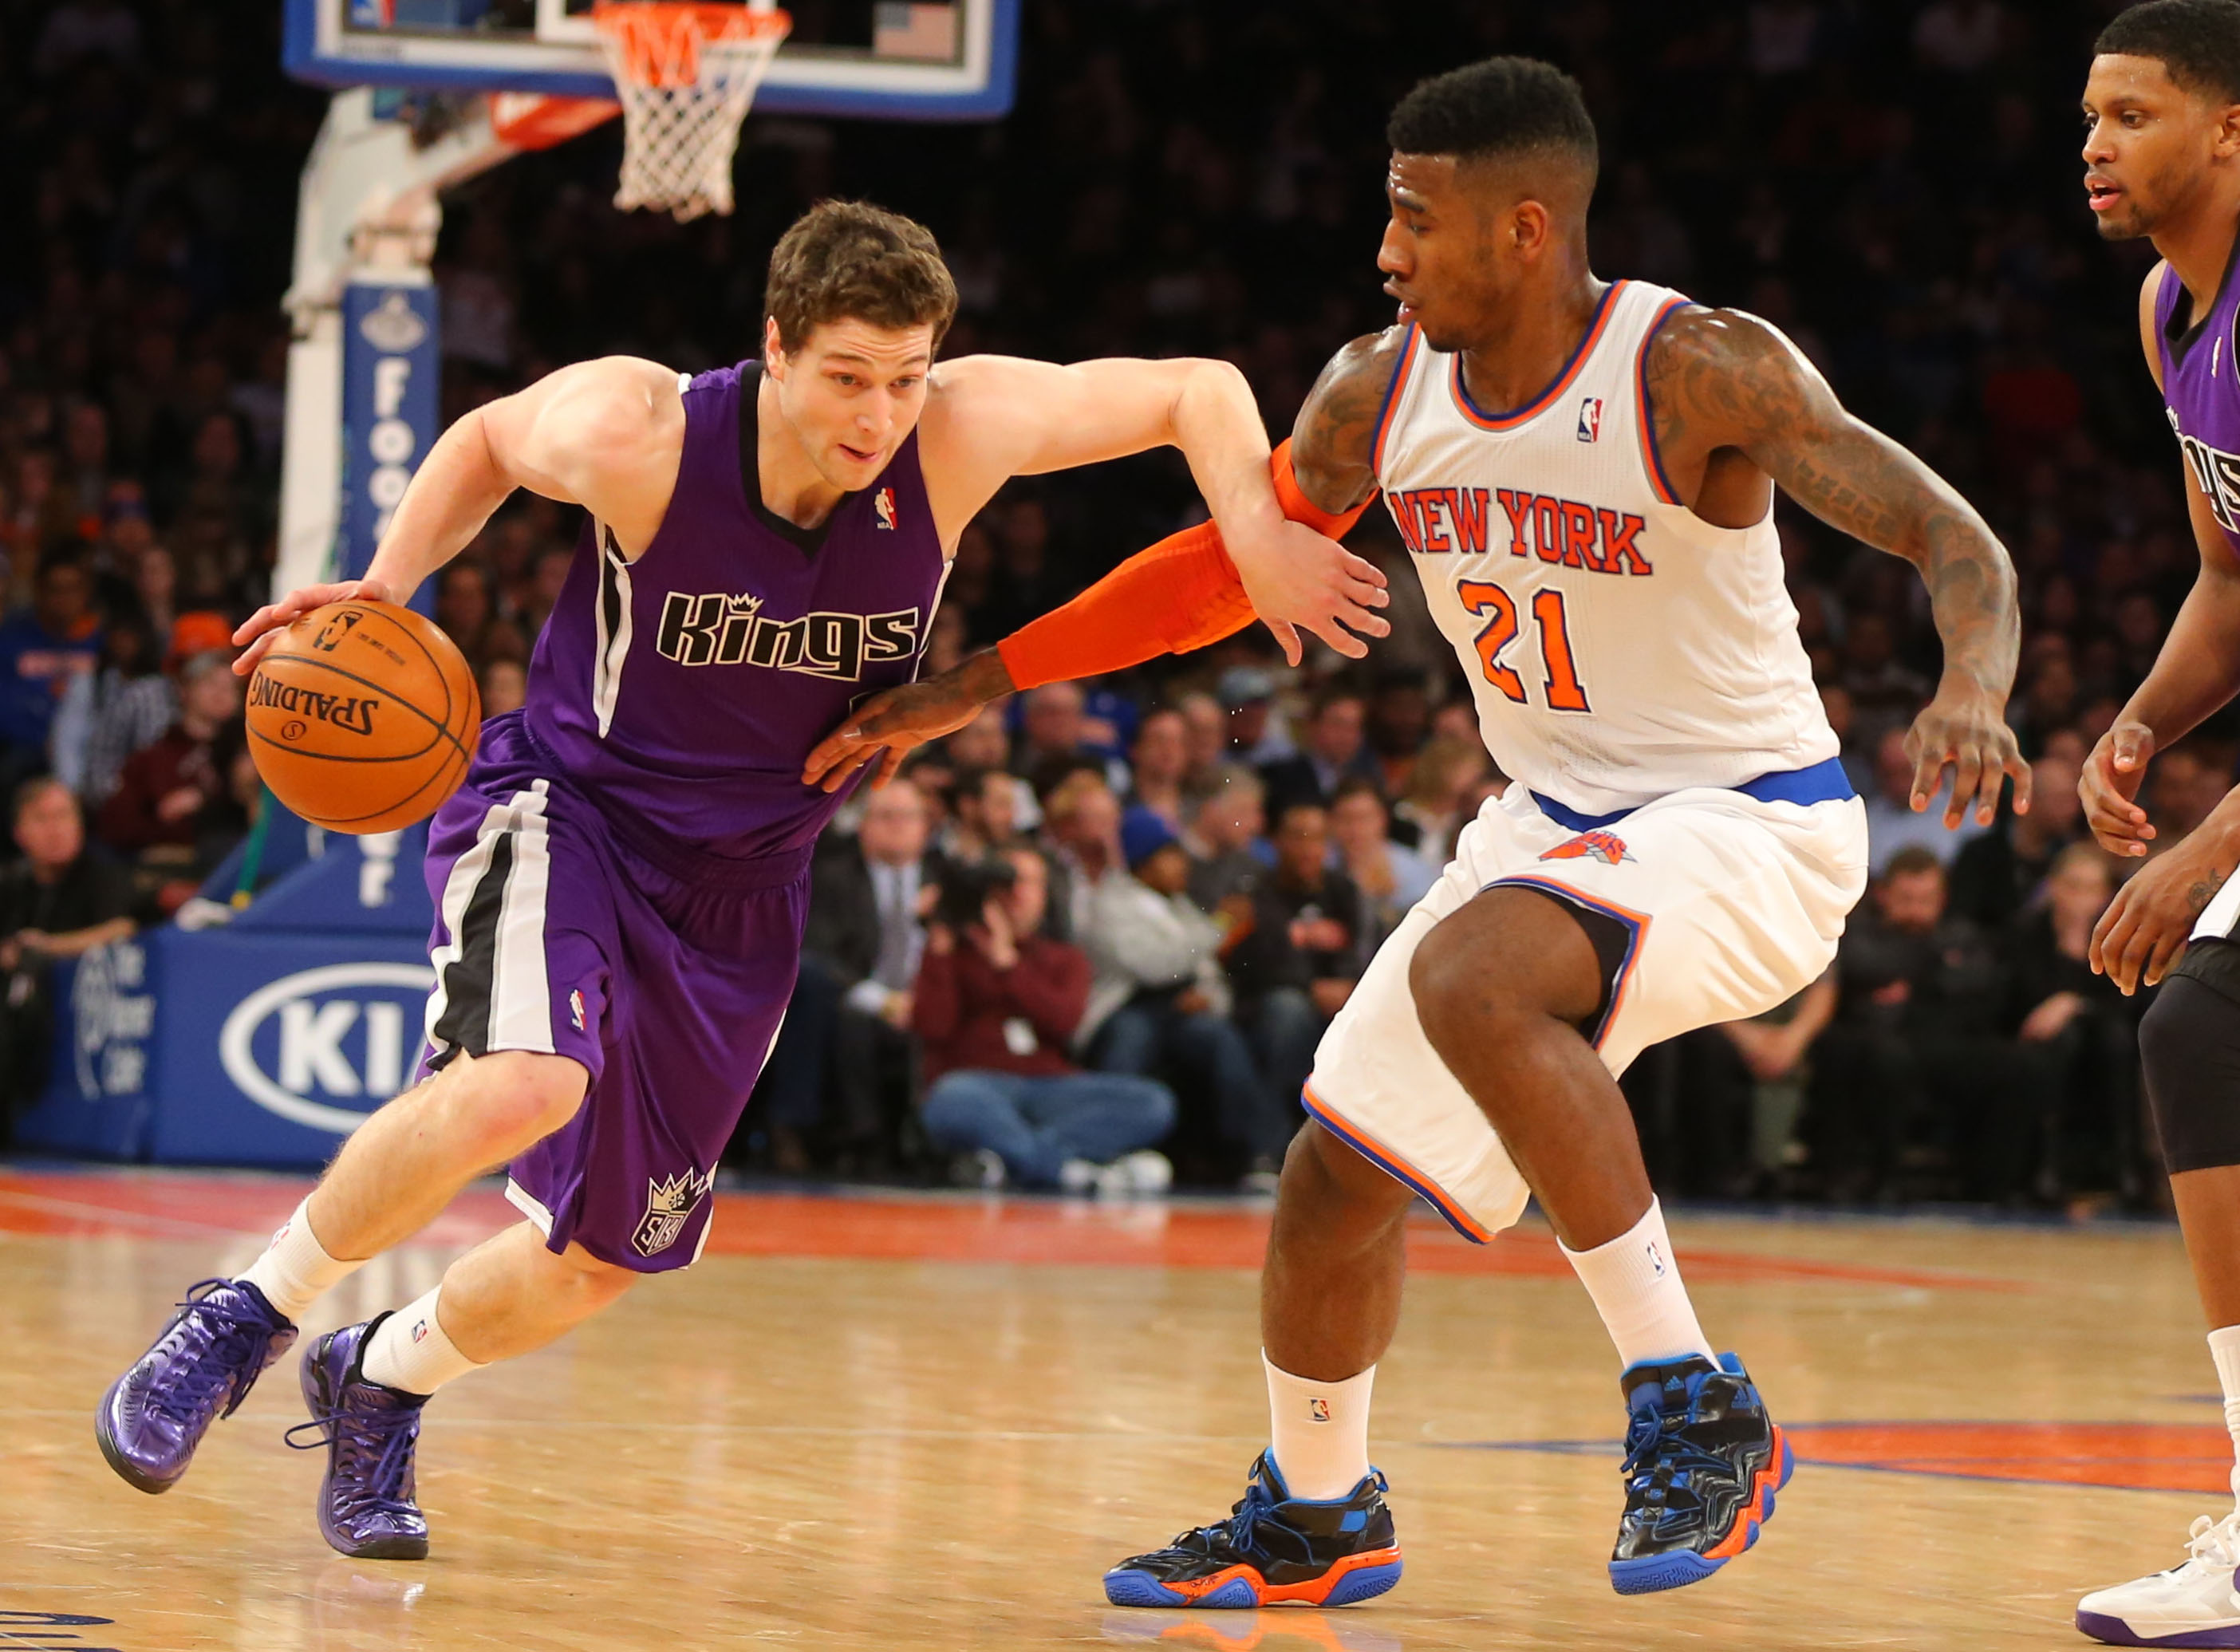 Feb 12, 2014; New York, NY, USA; Sacramento Kings point guard Jimmer Fredette (7) drives to the basket against New York Knicks shooting guard Iman Shumpert (21) at Madison Square Garden. Mandatory Credit: Jim O'Connor-USA TODAY Sports